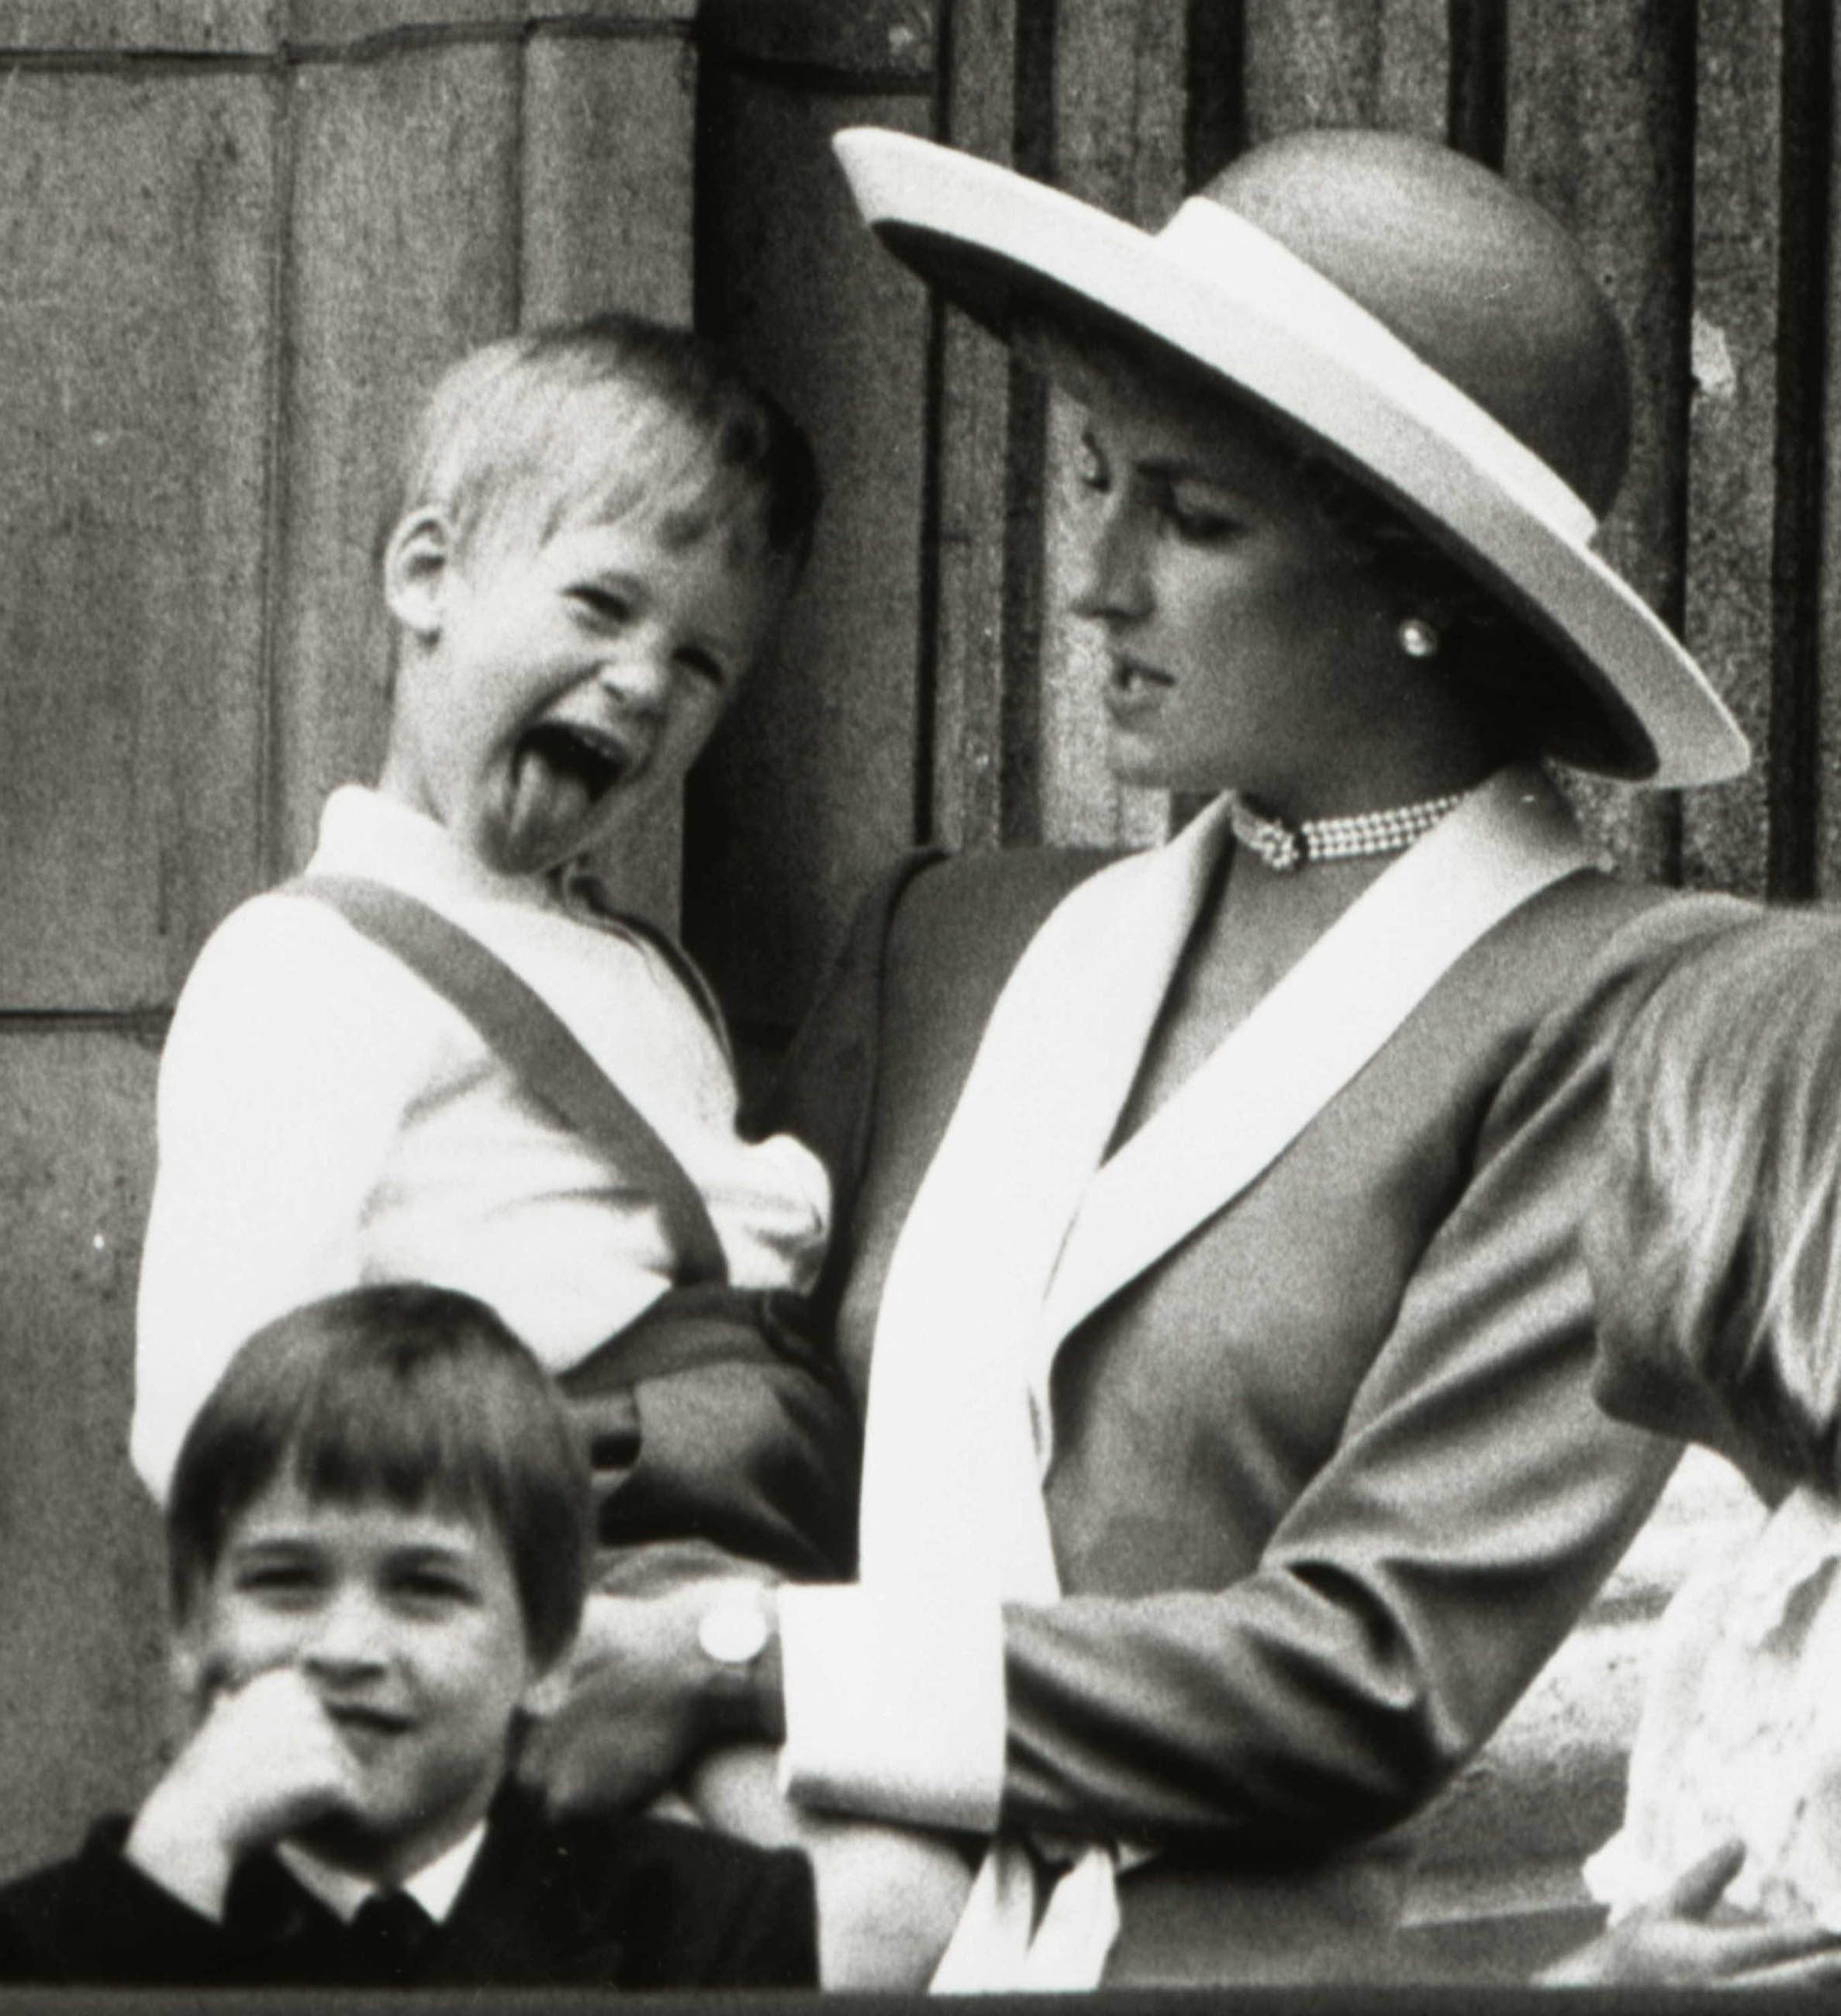 Princess Diana holds Prince Harry as her older son Prince William (L) looks out over the balcony of Buckingham Palace in London on June 11, 1988 after attending the Trooping the Colour ceremony, the Queen's birthday parade.  REUTERS/Stringer